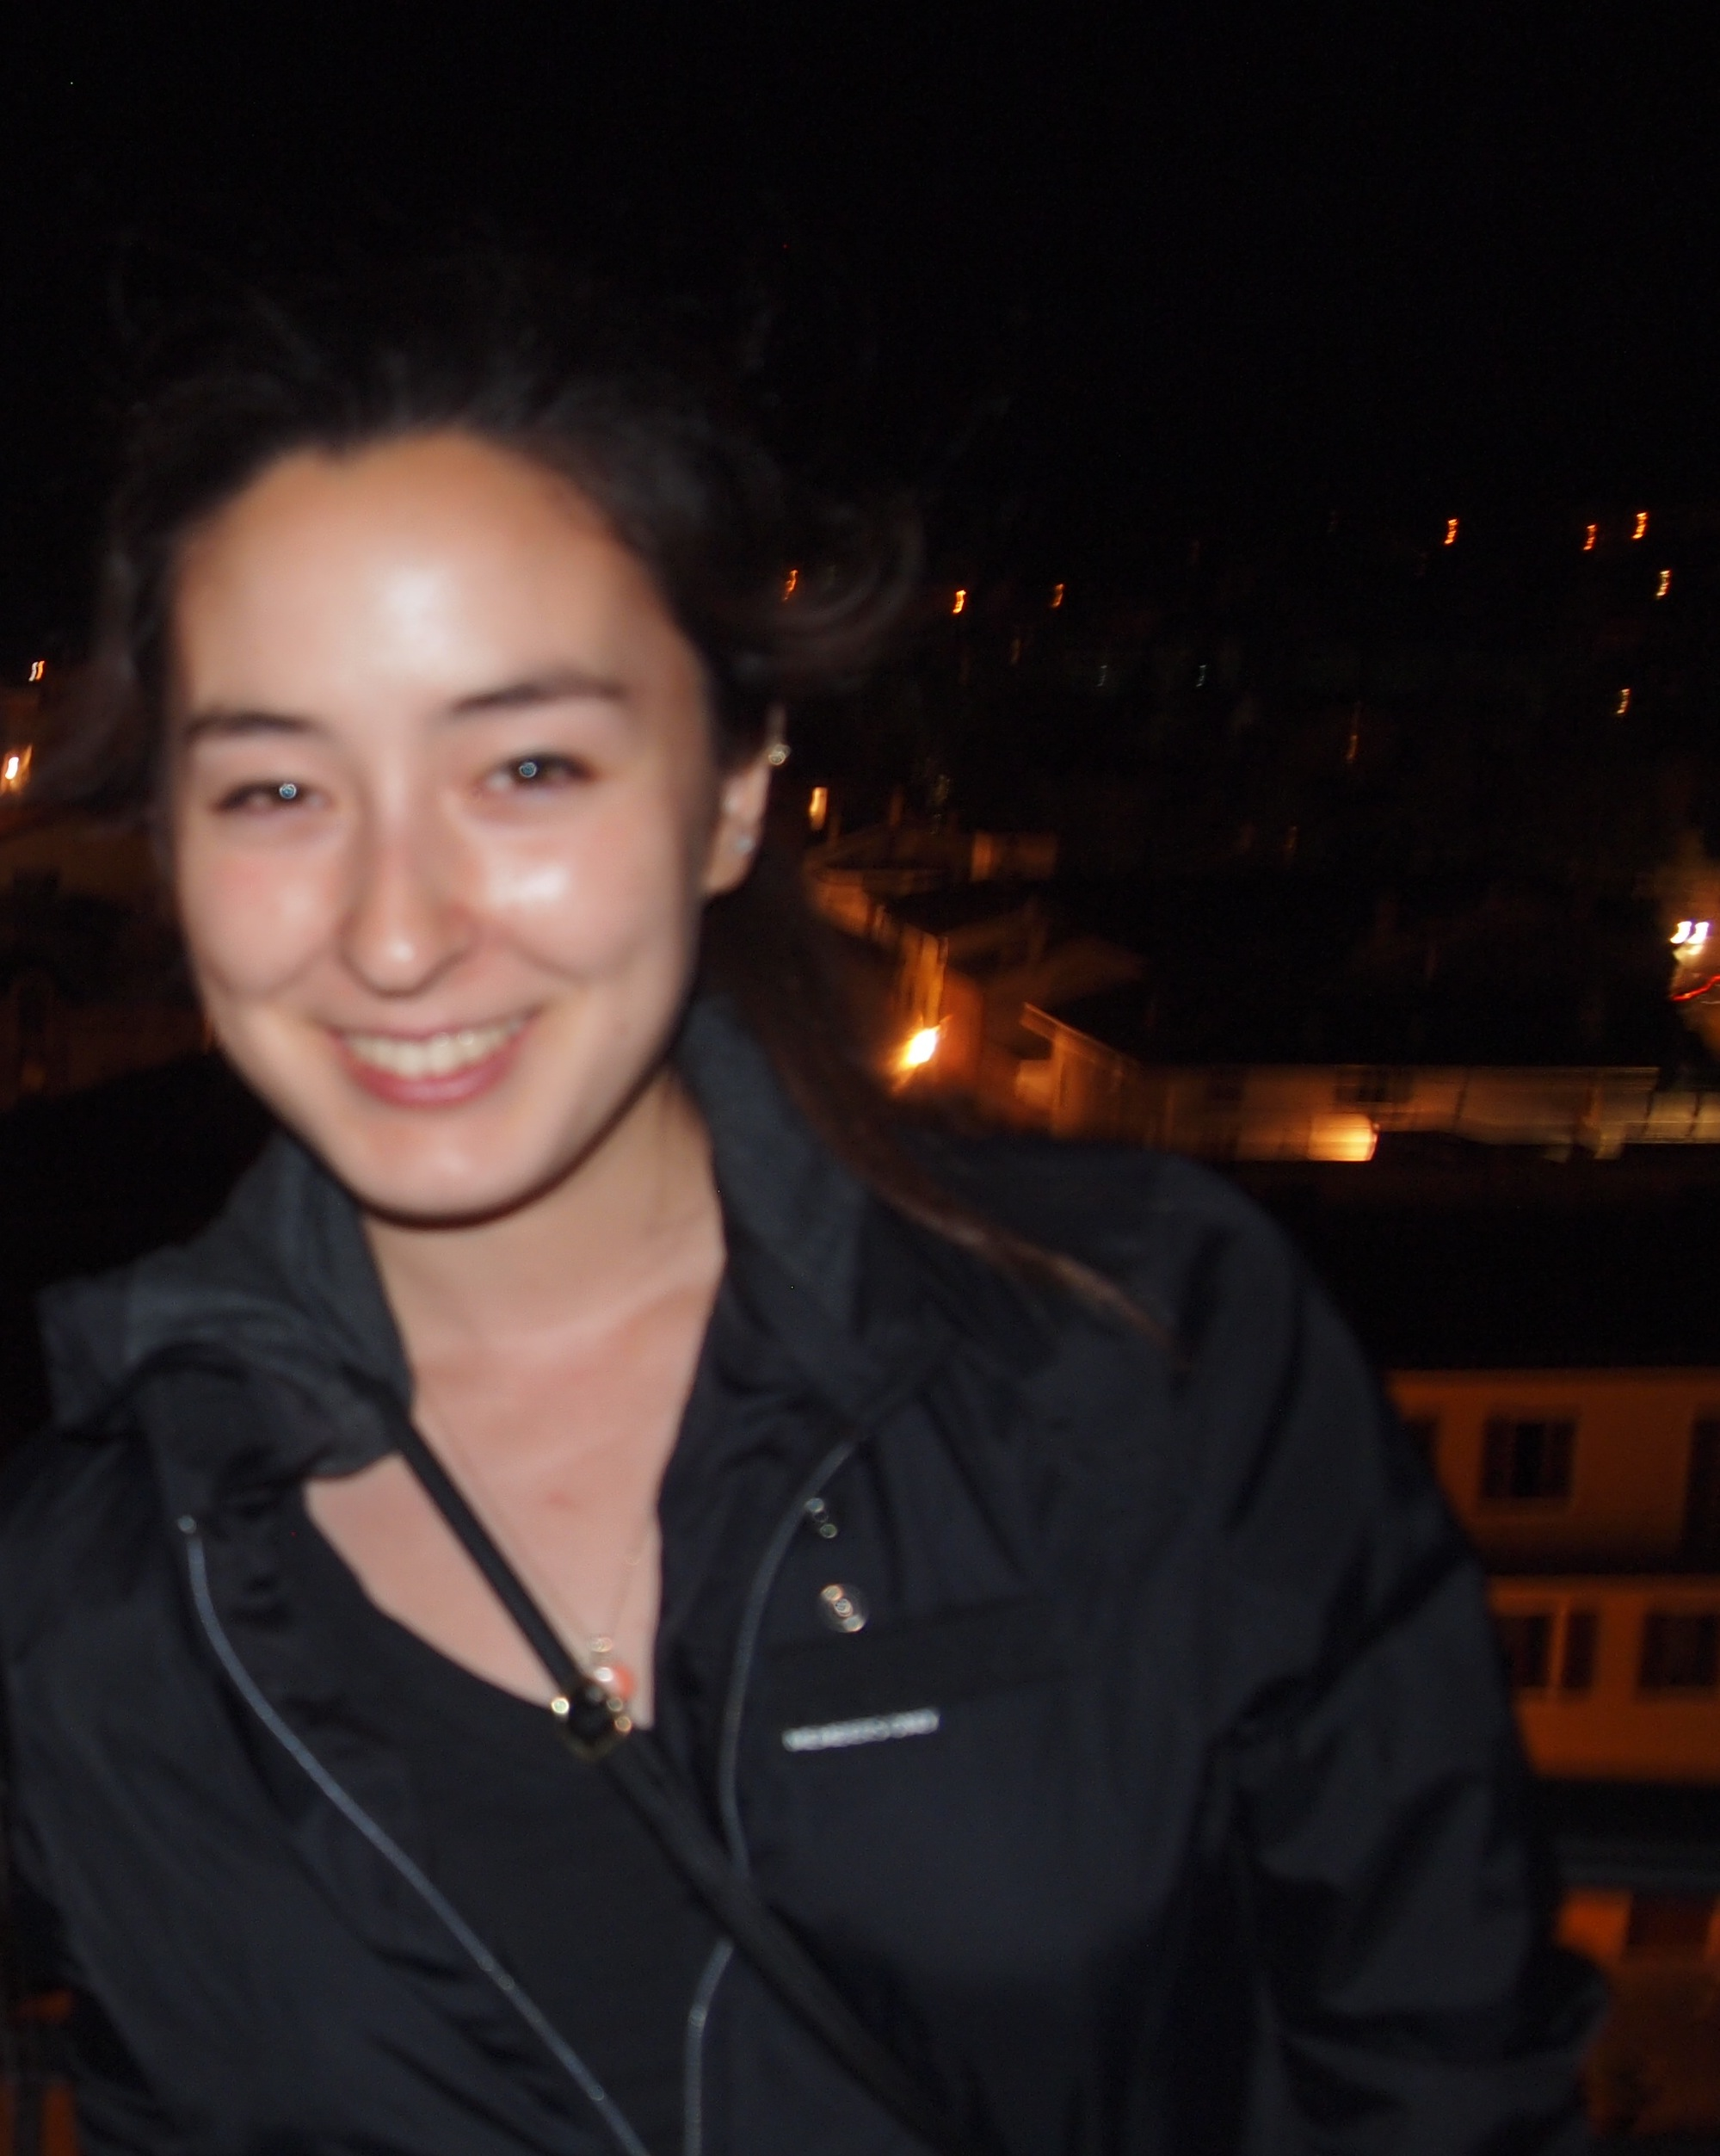 global studies thesis ucla Committee members: miriam wattles, xiaorong li, hui-shu lee (art history, ucla), lothar von falkenhausen (art history, ucla) dissertation: gao fenghan's (1683-1749) path to eccentricity and the growth of epigraphical writing in early qing yangzhou.